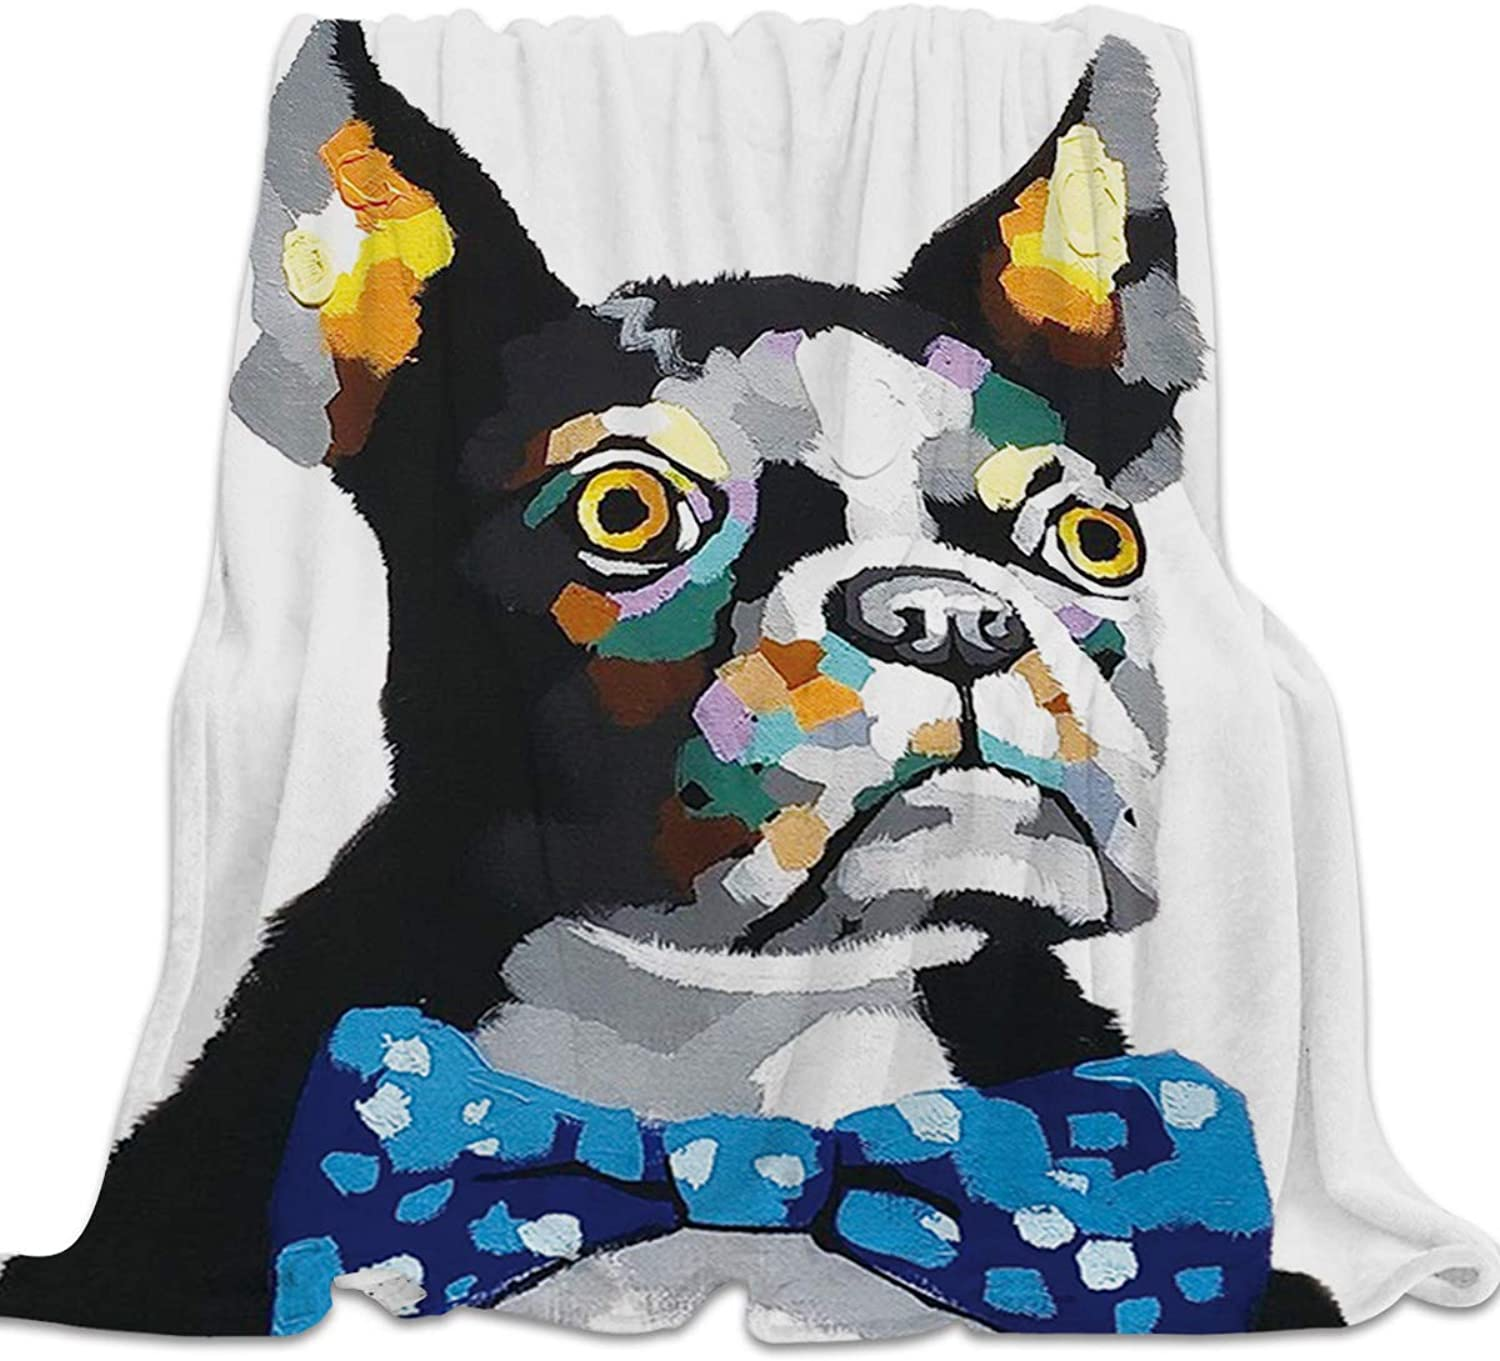 YEHO Art Gallery Flannel Fleece Bed Blanket Super Soft Cozy ThrowBlankets for Kids Girls Boys,Lightweight Blankets for Bed Sofa Couch Chair Day Nap,Hand Painting Dog Boston Terrier Pattern,49x59inch